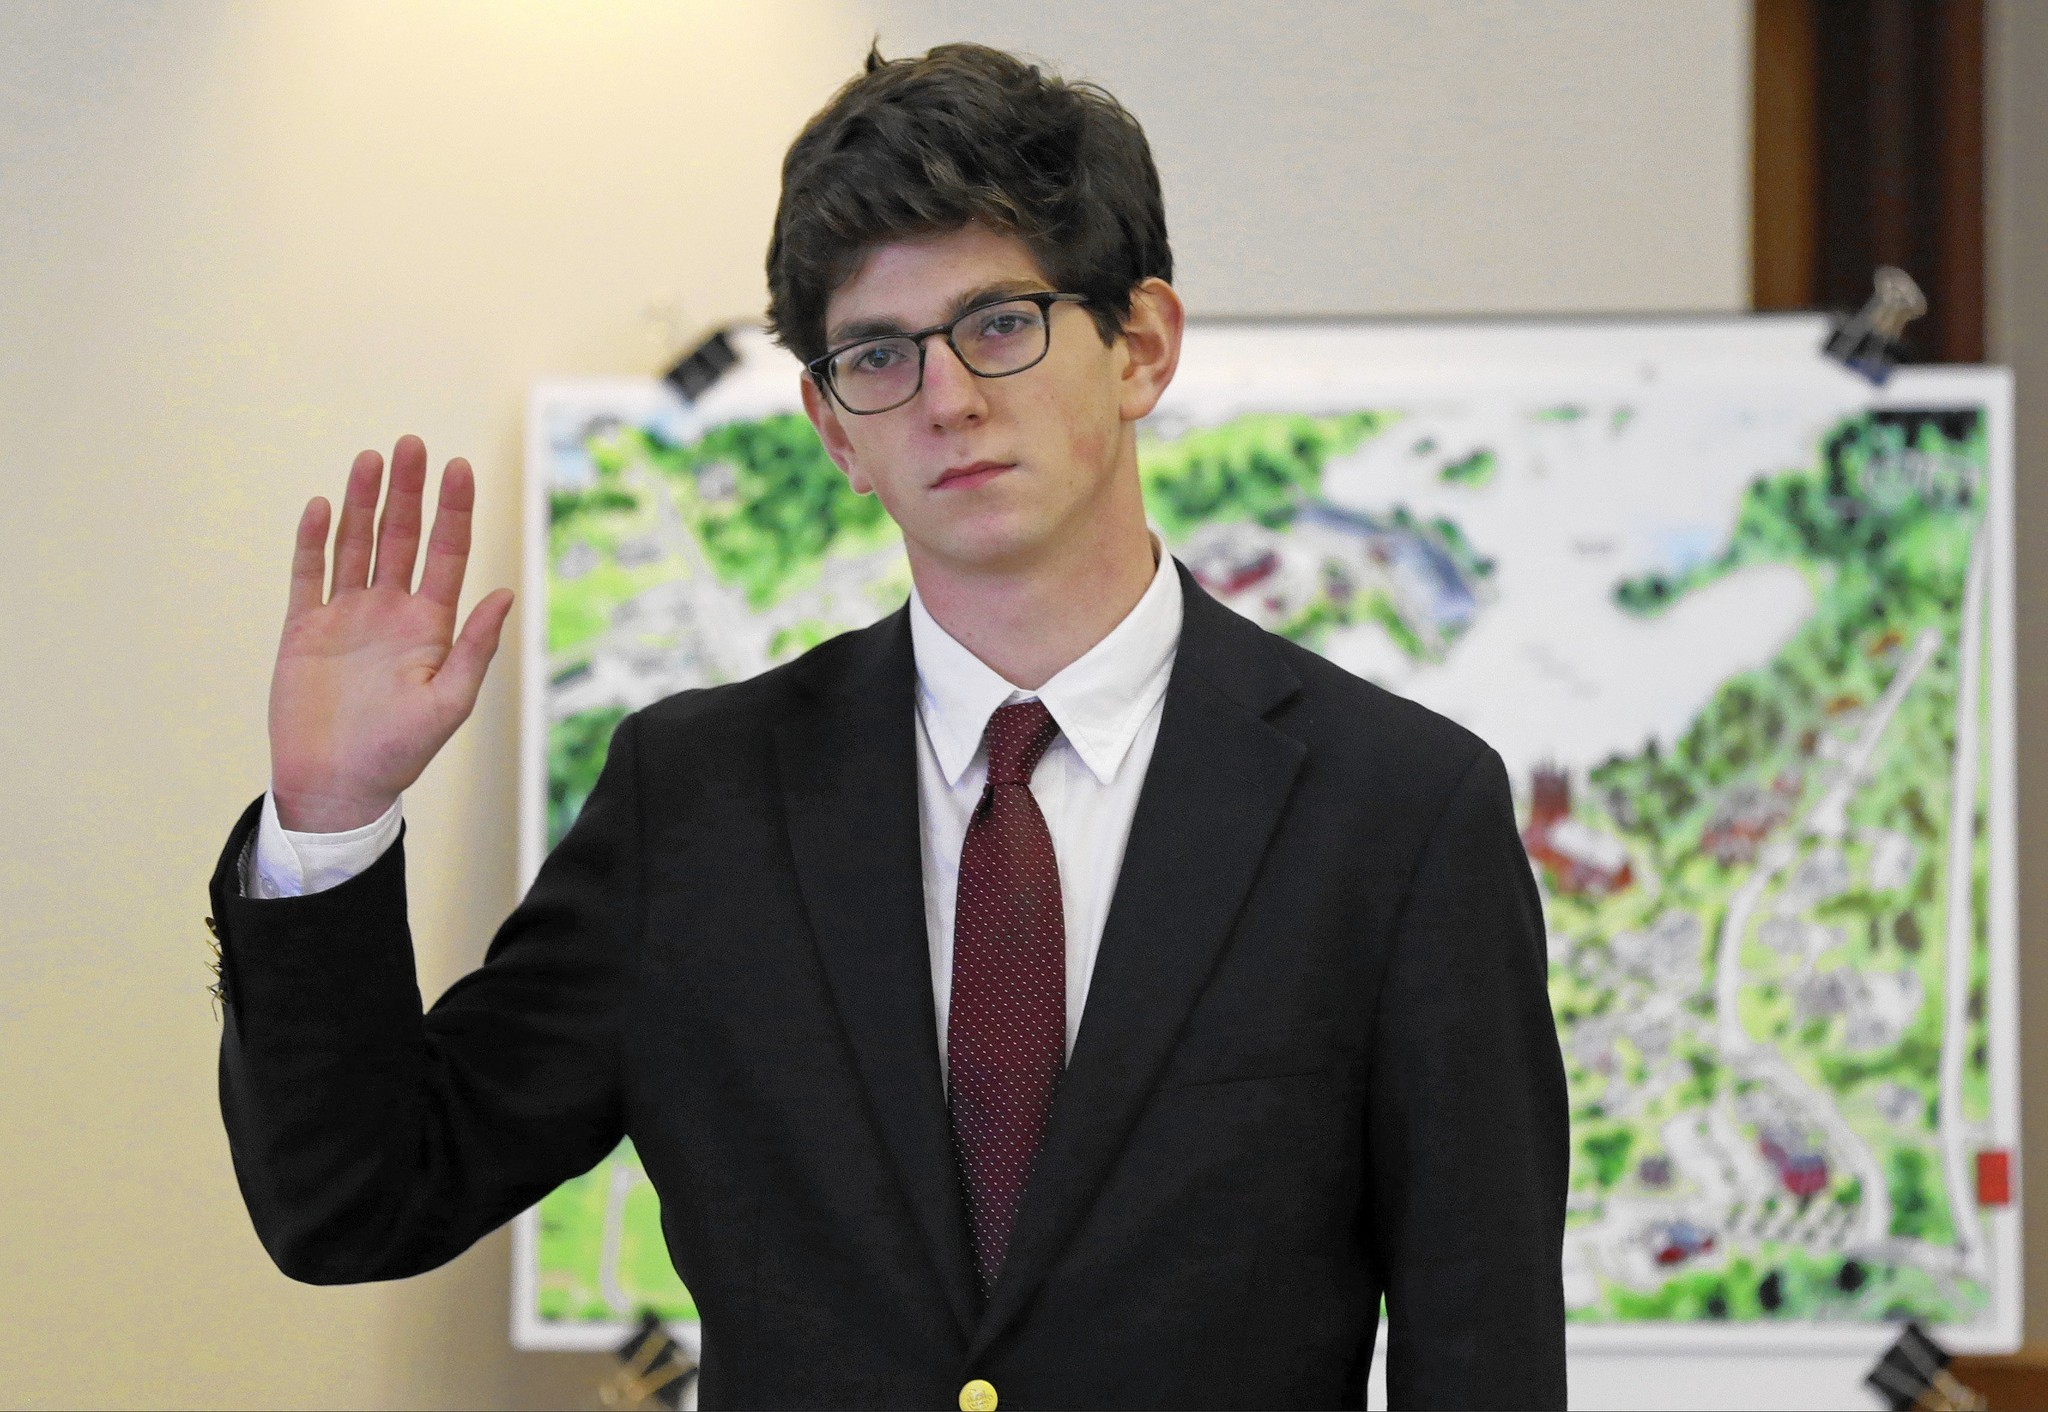 N.H. prep school graduate gets a year in jail for sexual assault